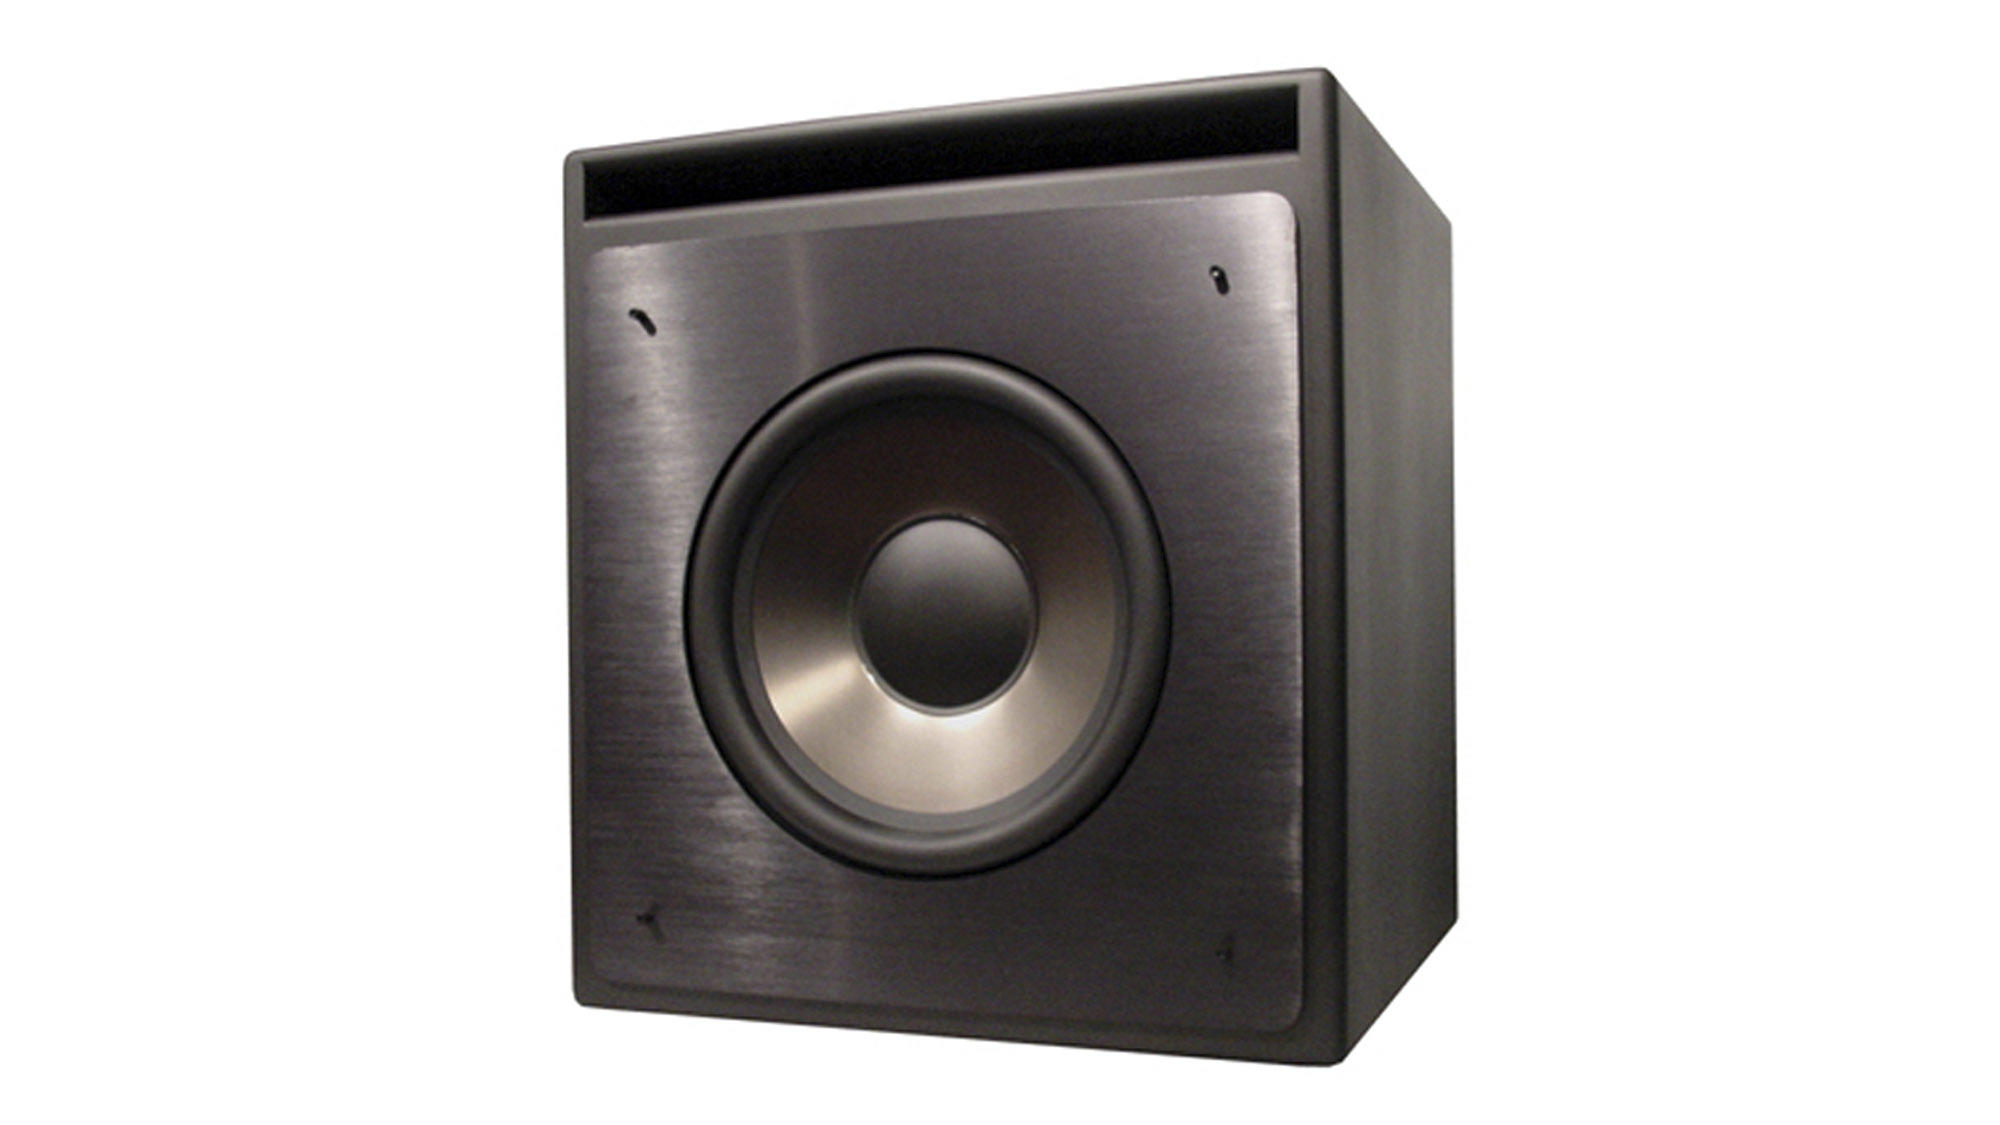 thx ultra2 subwoofer premium home audio by klipsch klipsch. Black Bedroom Furniture Sets. Home Design Ideas